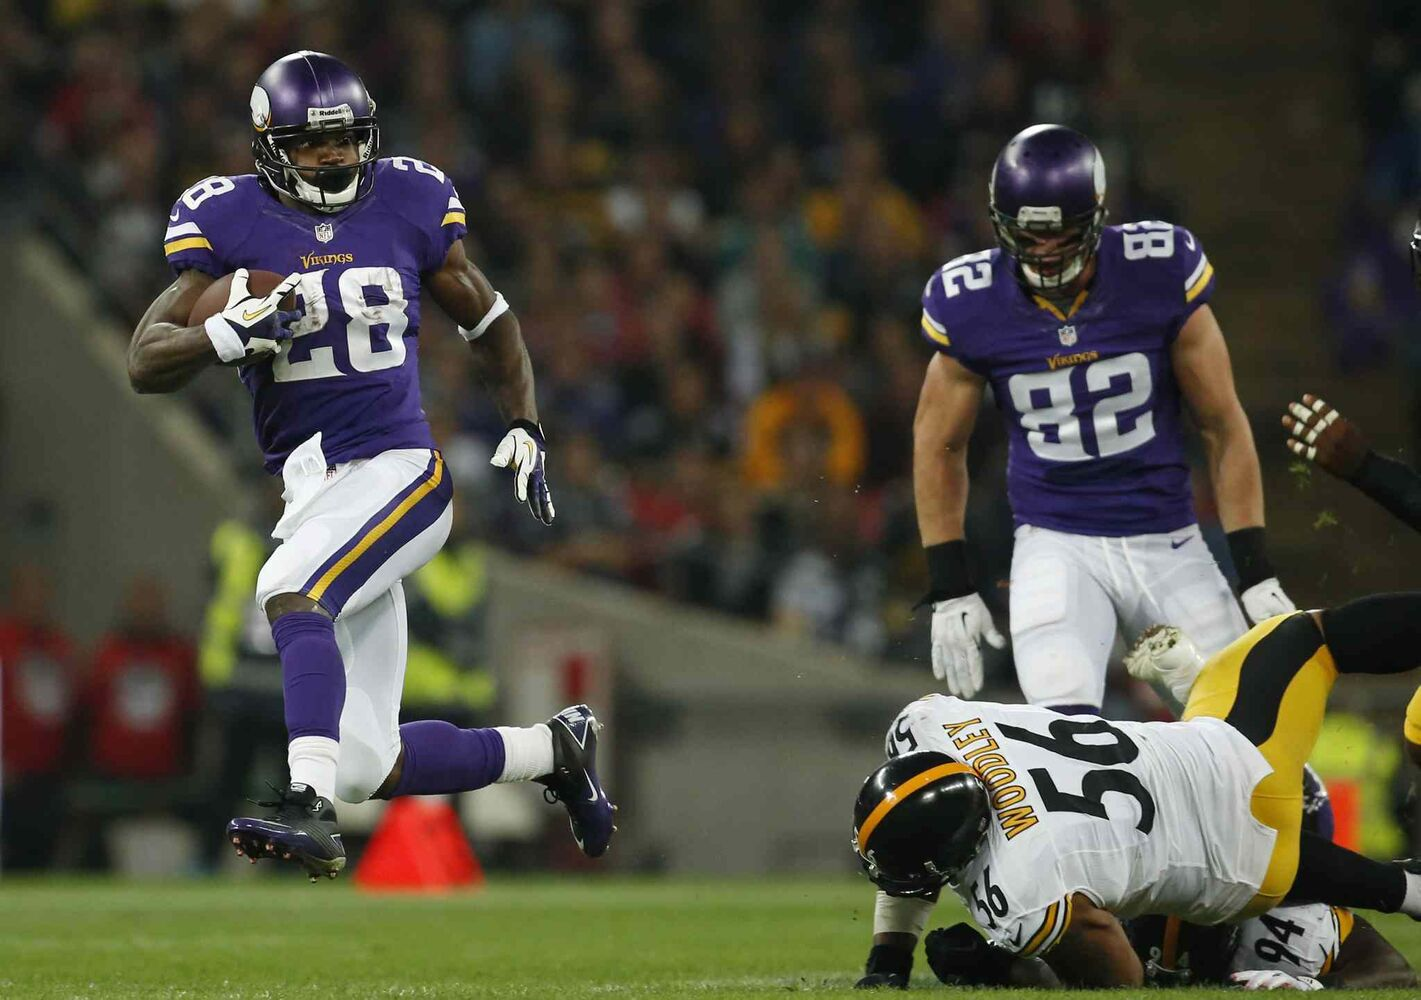 Minnesota Vikings running back Adrian Peterson (left) blasts past Pittsburgh Steelers linebacker LaMarr Woodley to score a 70-yard touchdown during the Vikes' 34-27 win at Wembley Stadium, London, on Sunday. (matt dunham / the associated press)